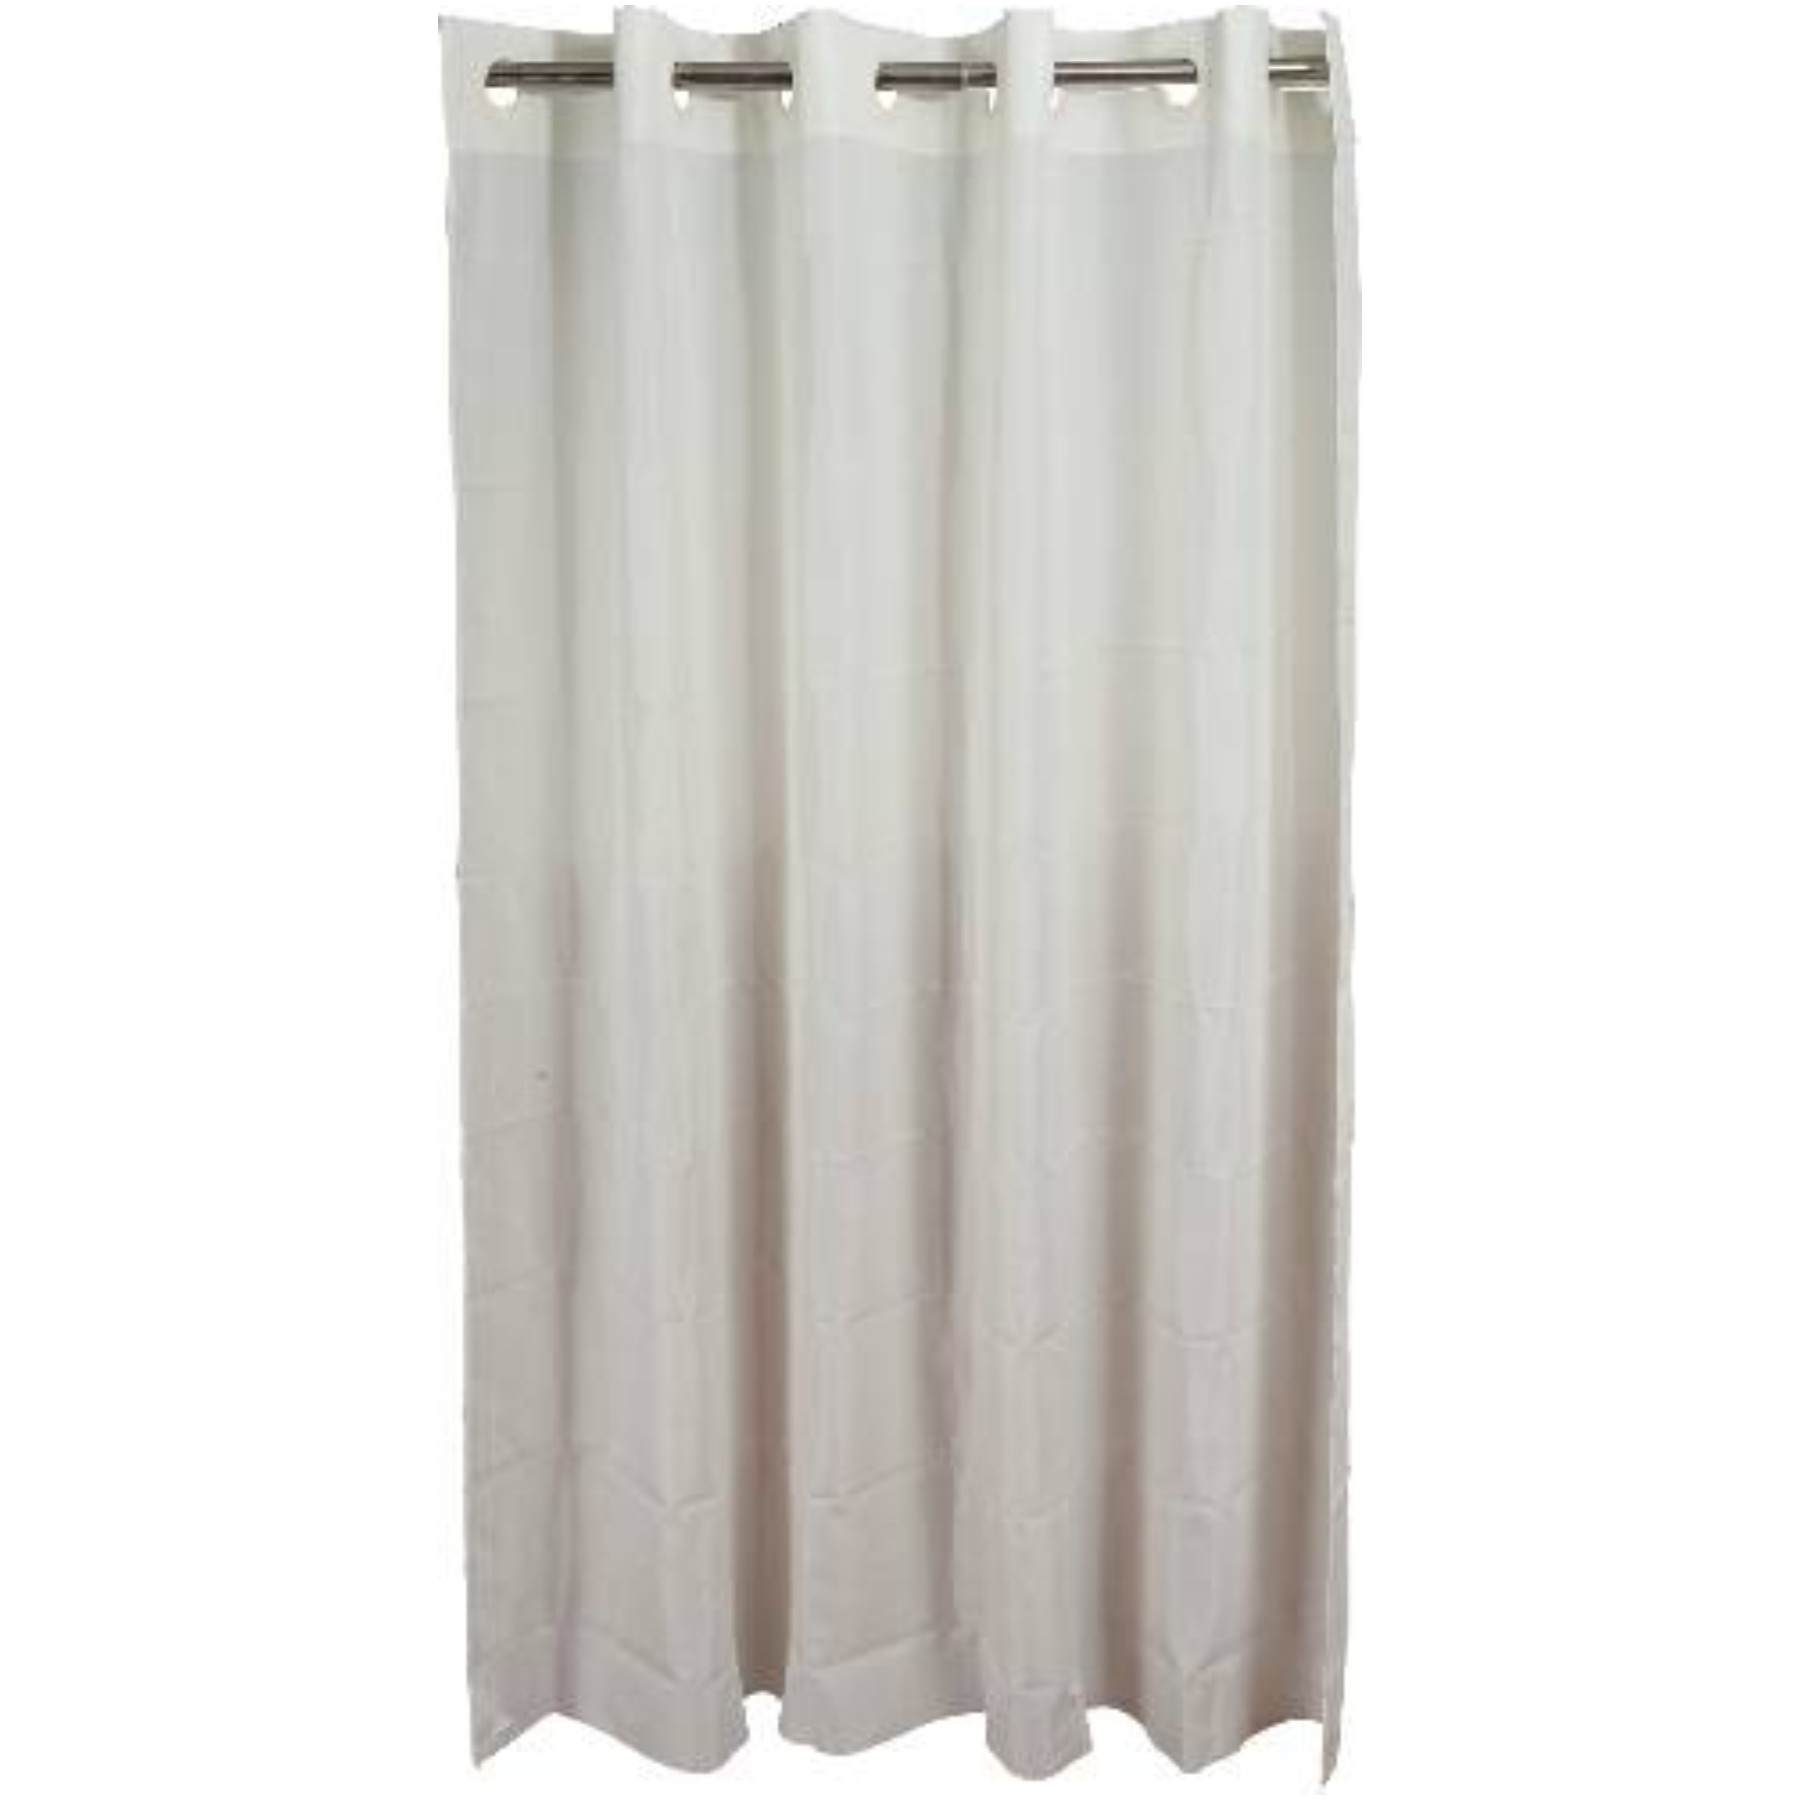 HOOKLESS SHOWER CURTAIN WITH PLAIN WEAVE FABRIC  BEIGE